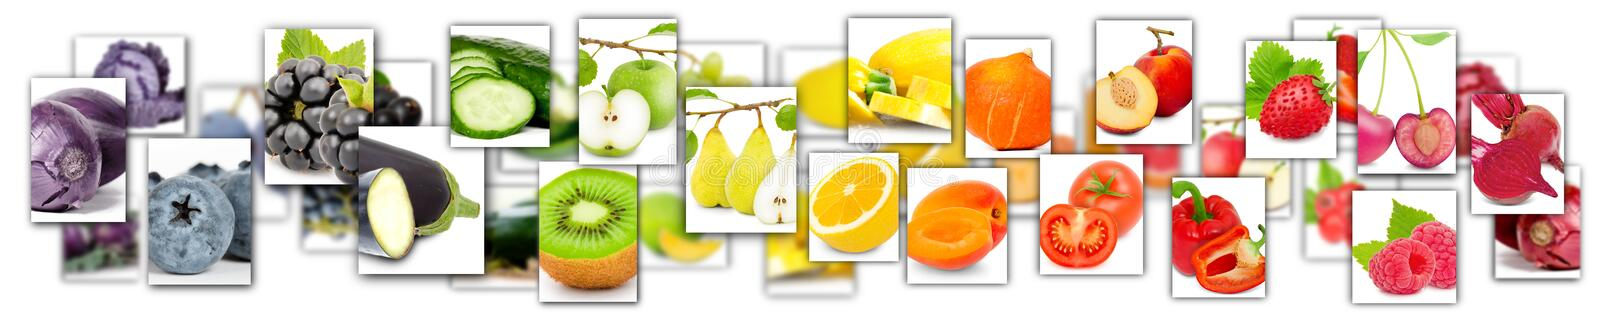 Fruit and Vegetable Mix stock illustration